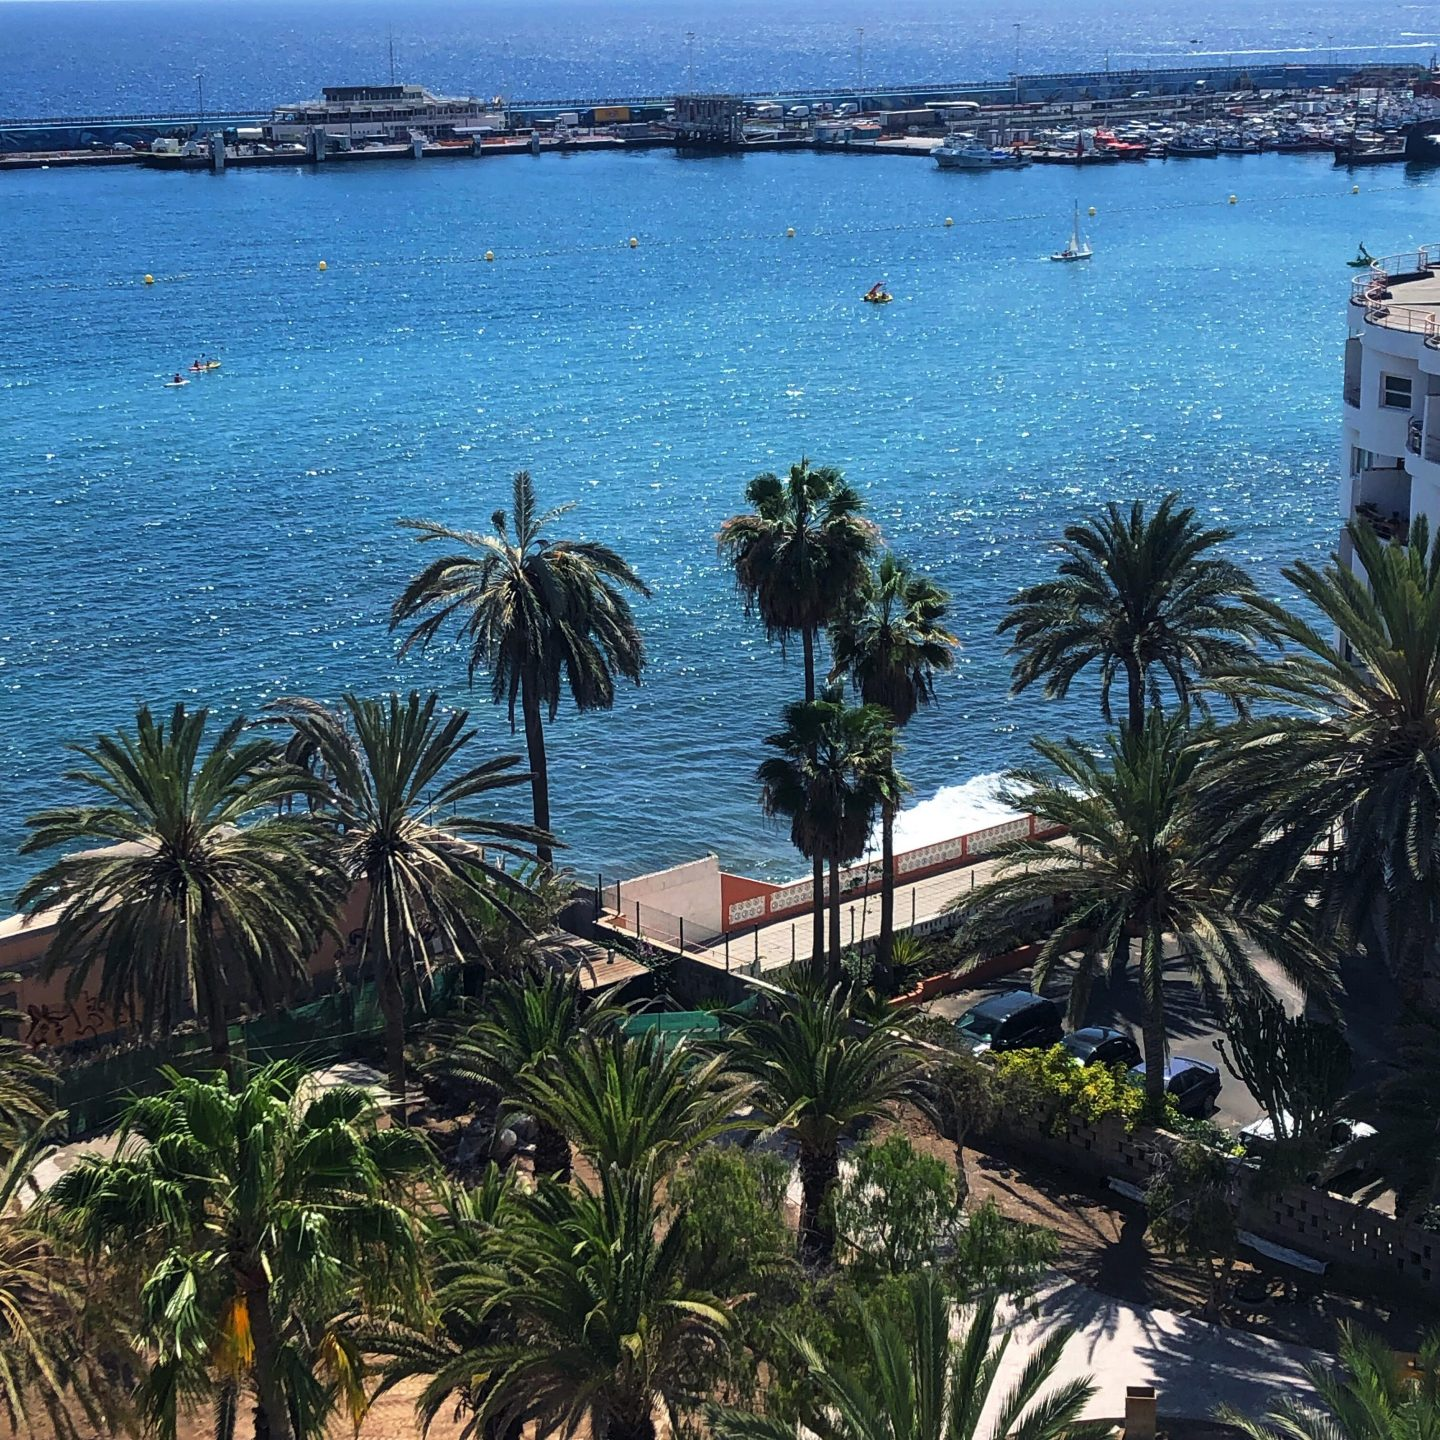 The Sea and Palm Trees